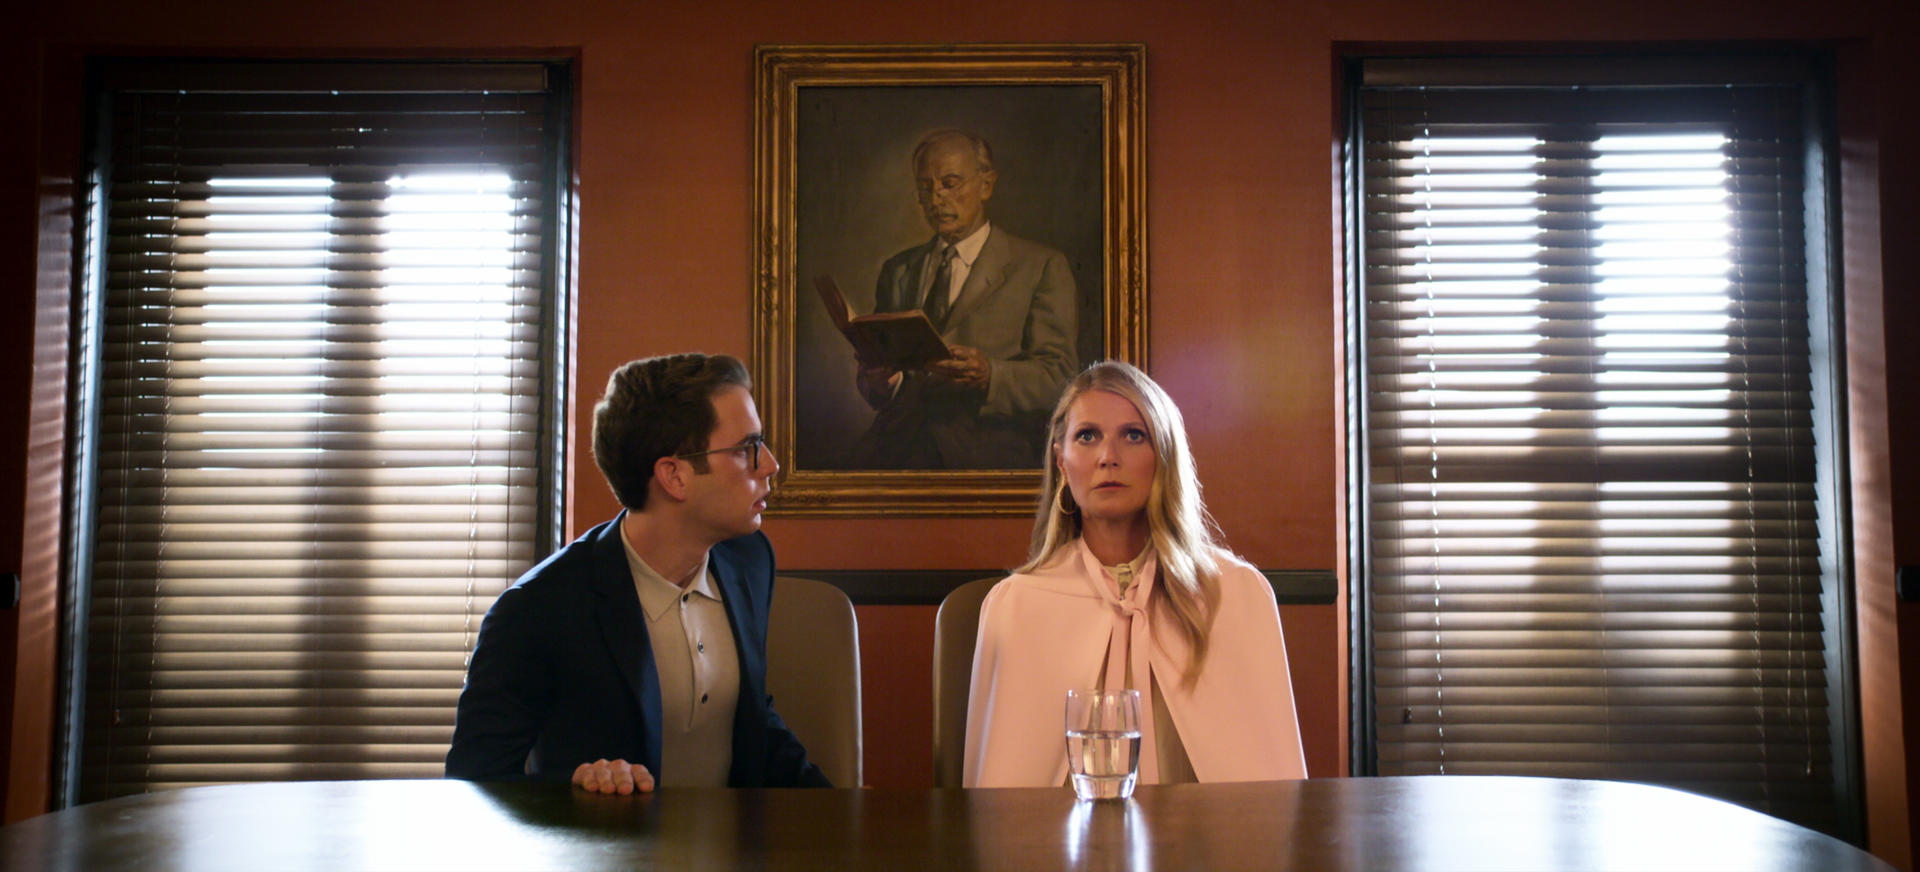 Ben Platt and Gwyneth Paltrow in 'The Politician.'